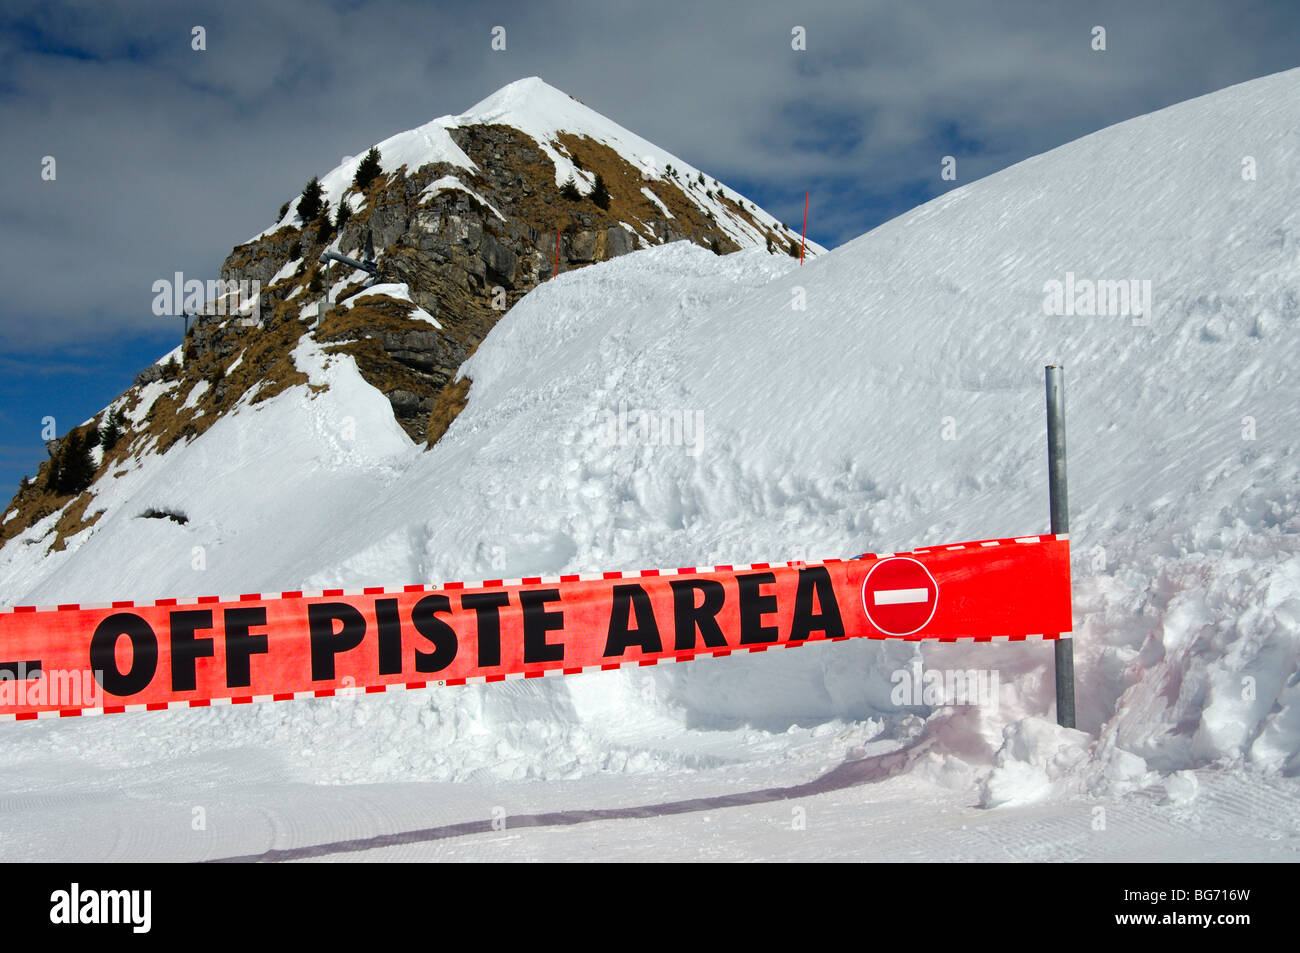 Warning sign preventing access to a closed ski-run in the skiing area Morzine Avoriaz, Haute-Savoie, France - Stock Image